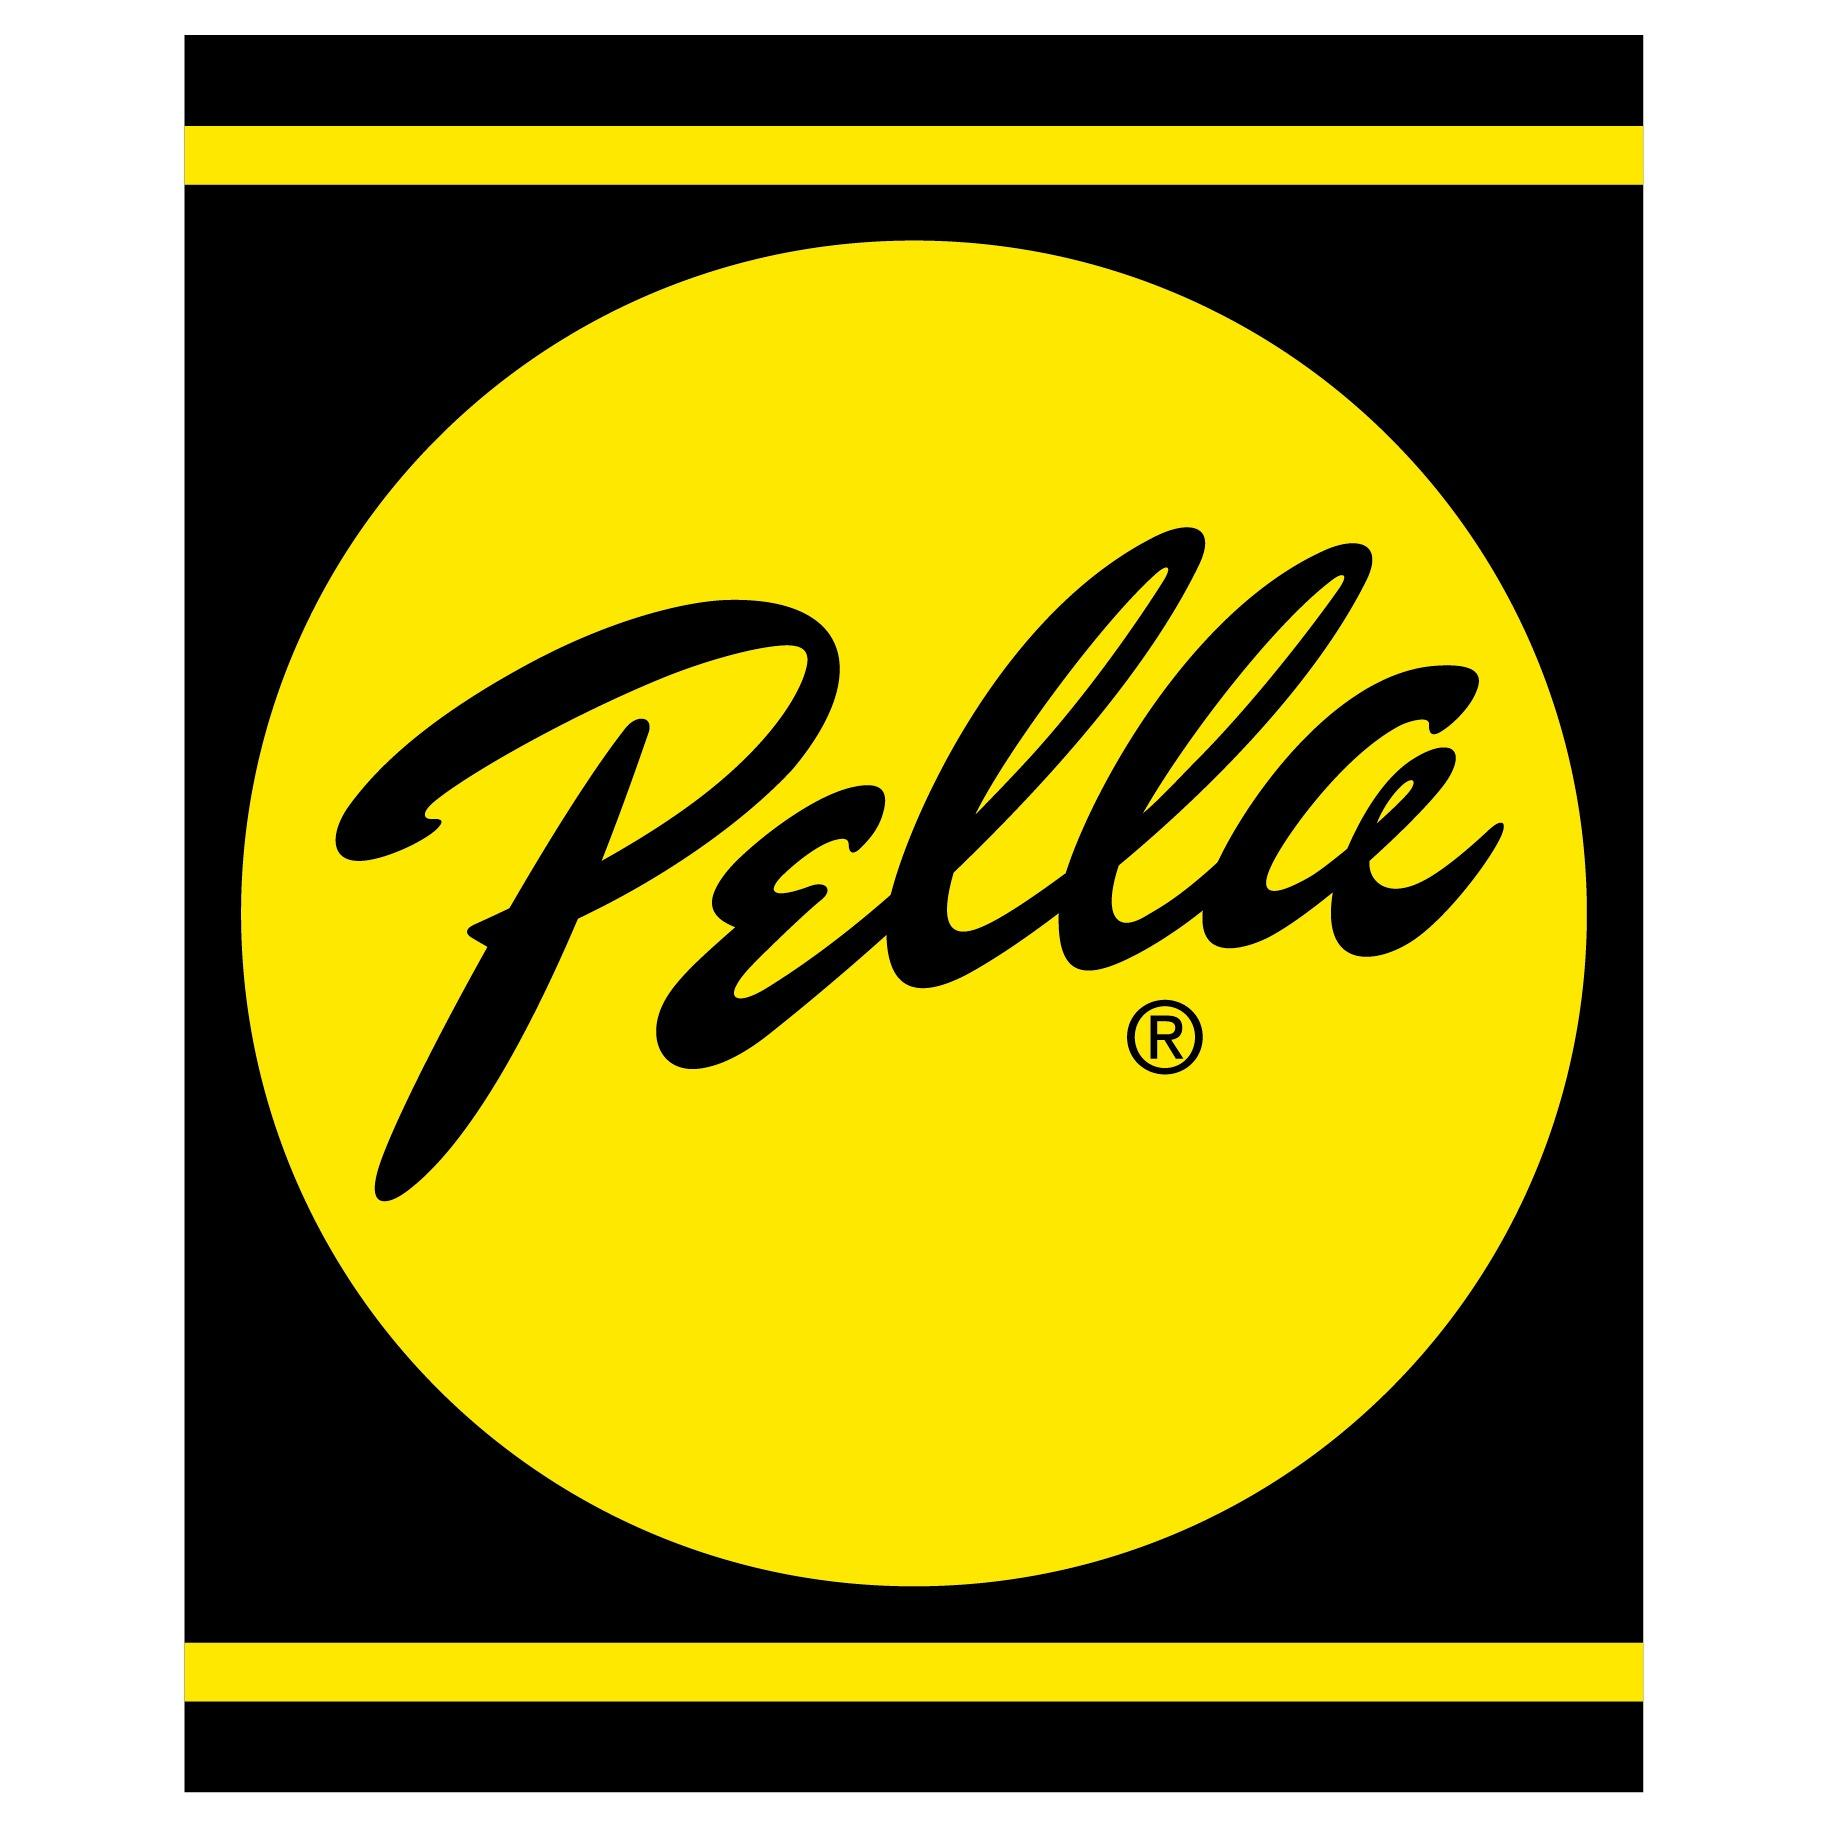 Pella Windows and Doors of Hicksville